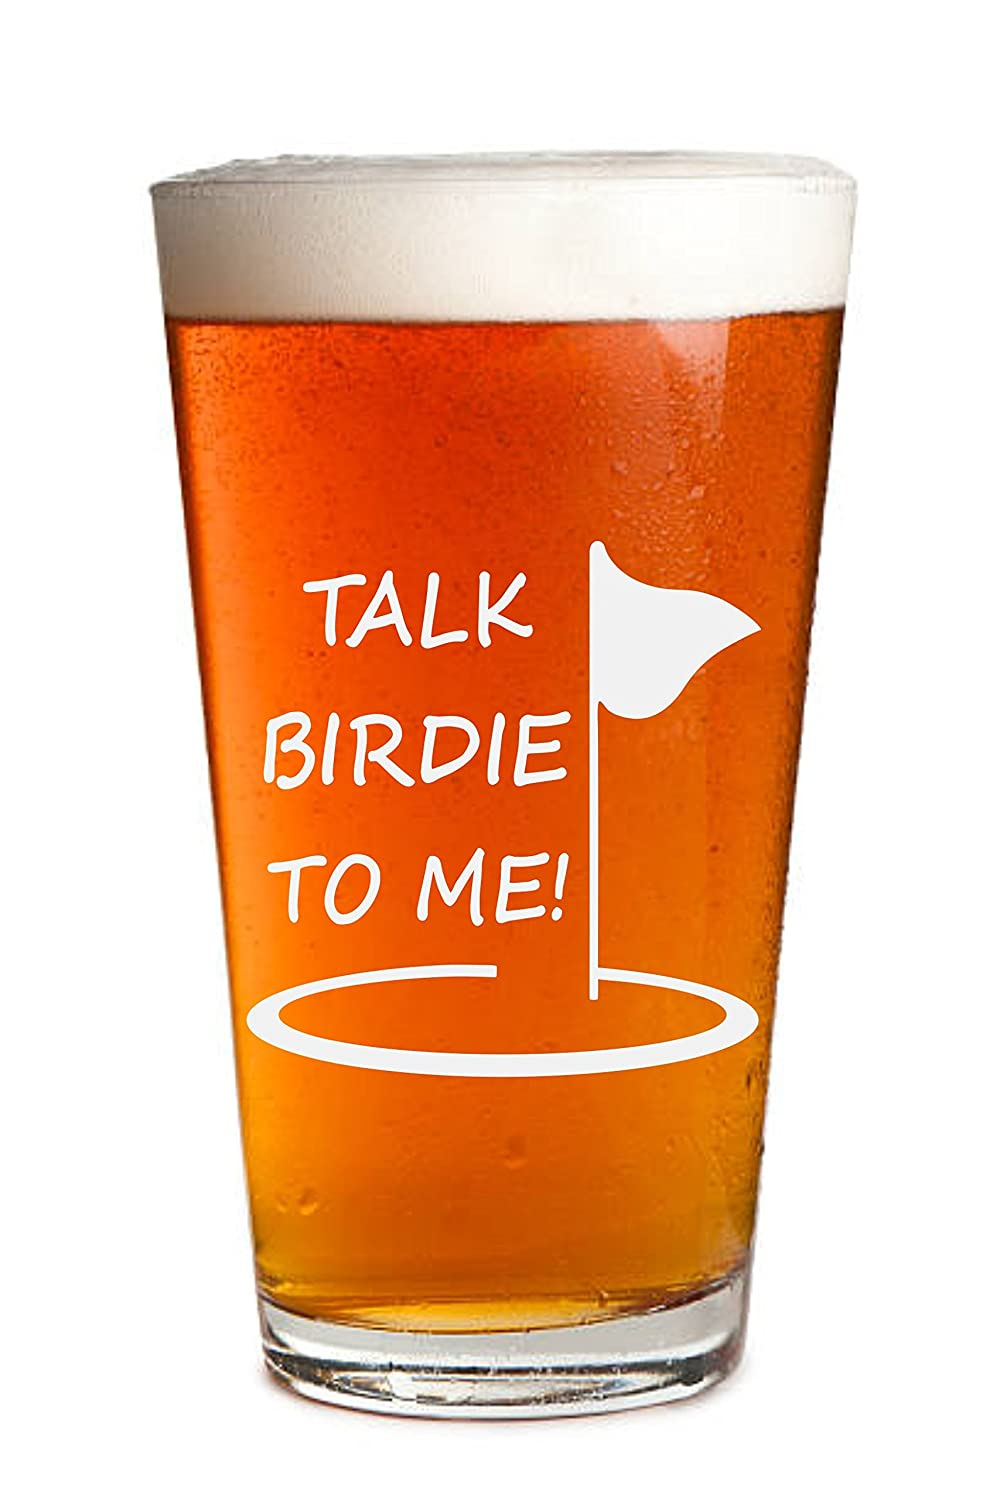 Talk Birdie To Me - 1 Pack - Engraved Beer Glass - Golf Gift - Golfer Beer Glass - 16oz Clear Pint/Mixing Glass - Funny Gifts for Men and Women by Sandblast Creations